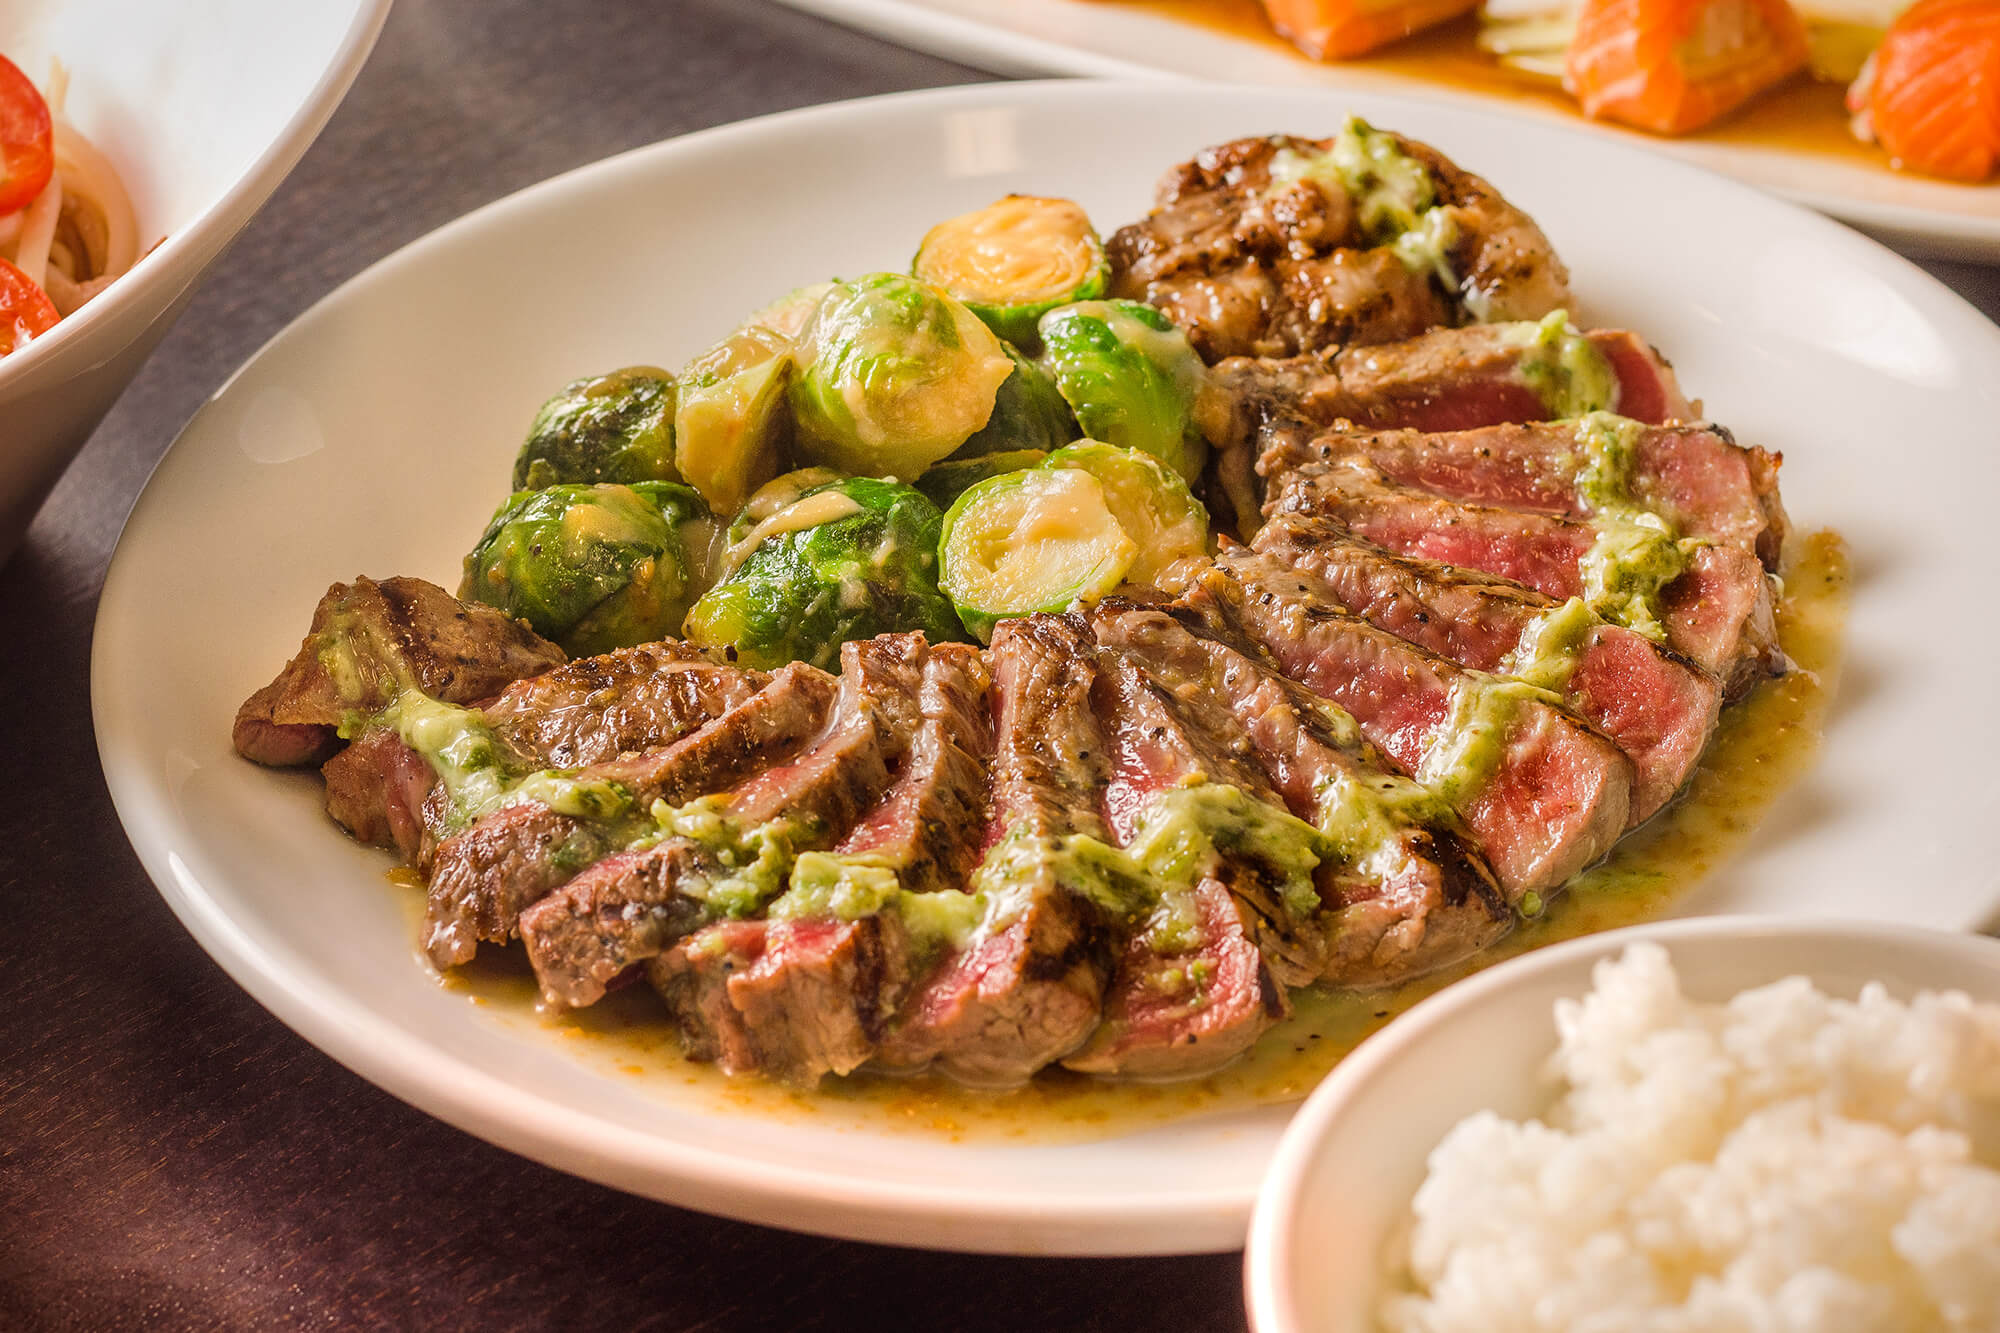 NY Steak with brussel sprouts